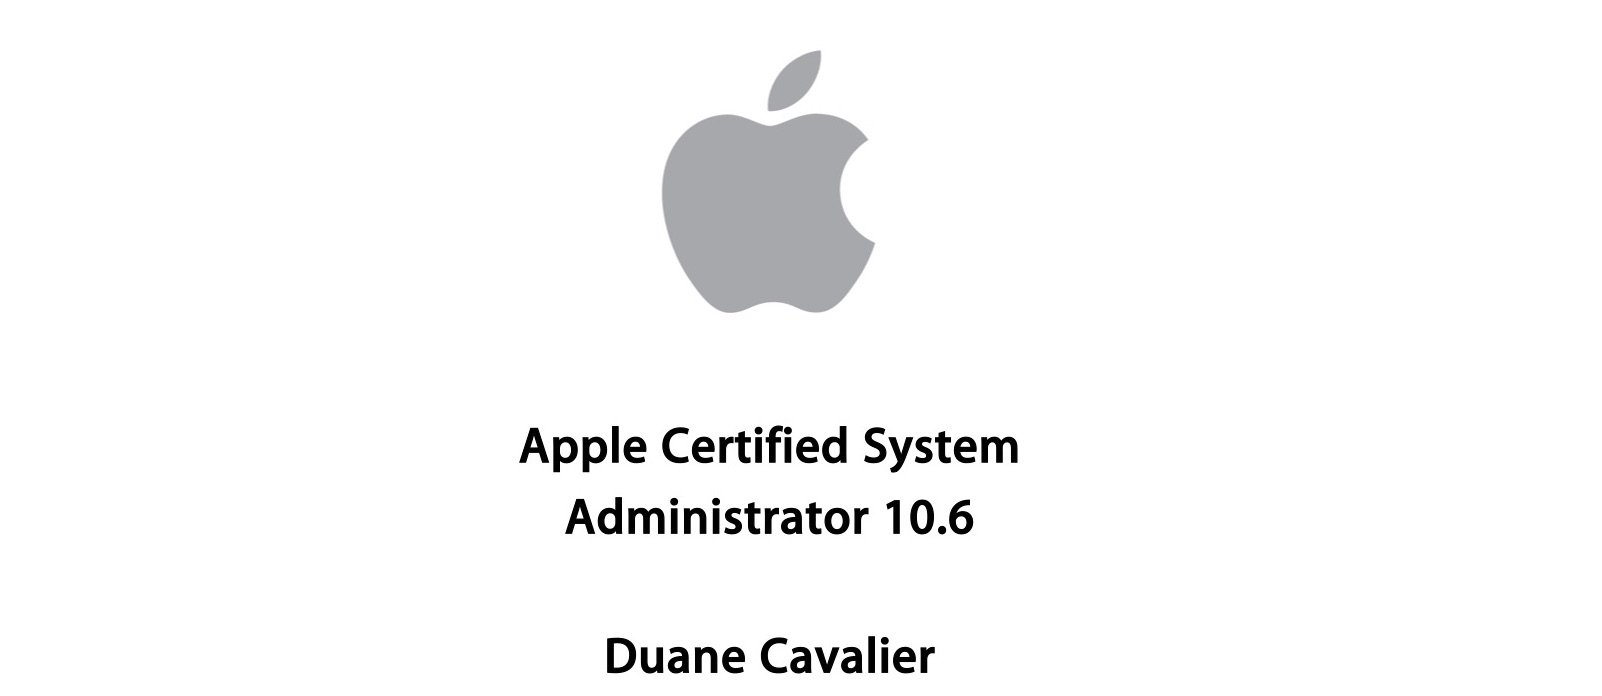 Apple Computer Expert By Macnotomo Rent Meee